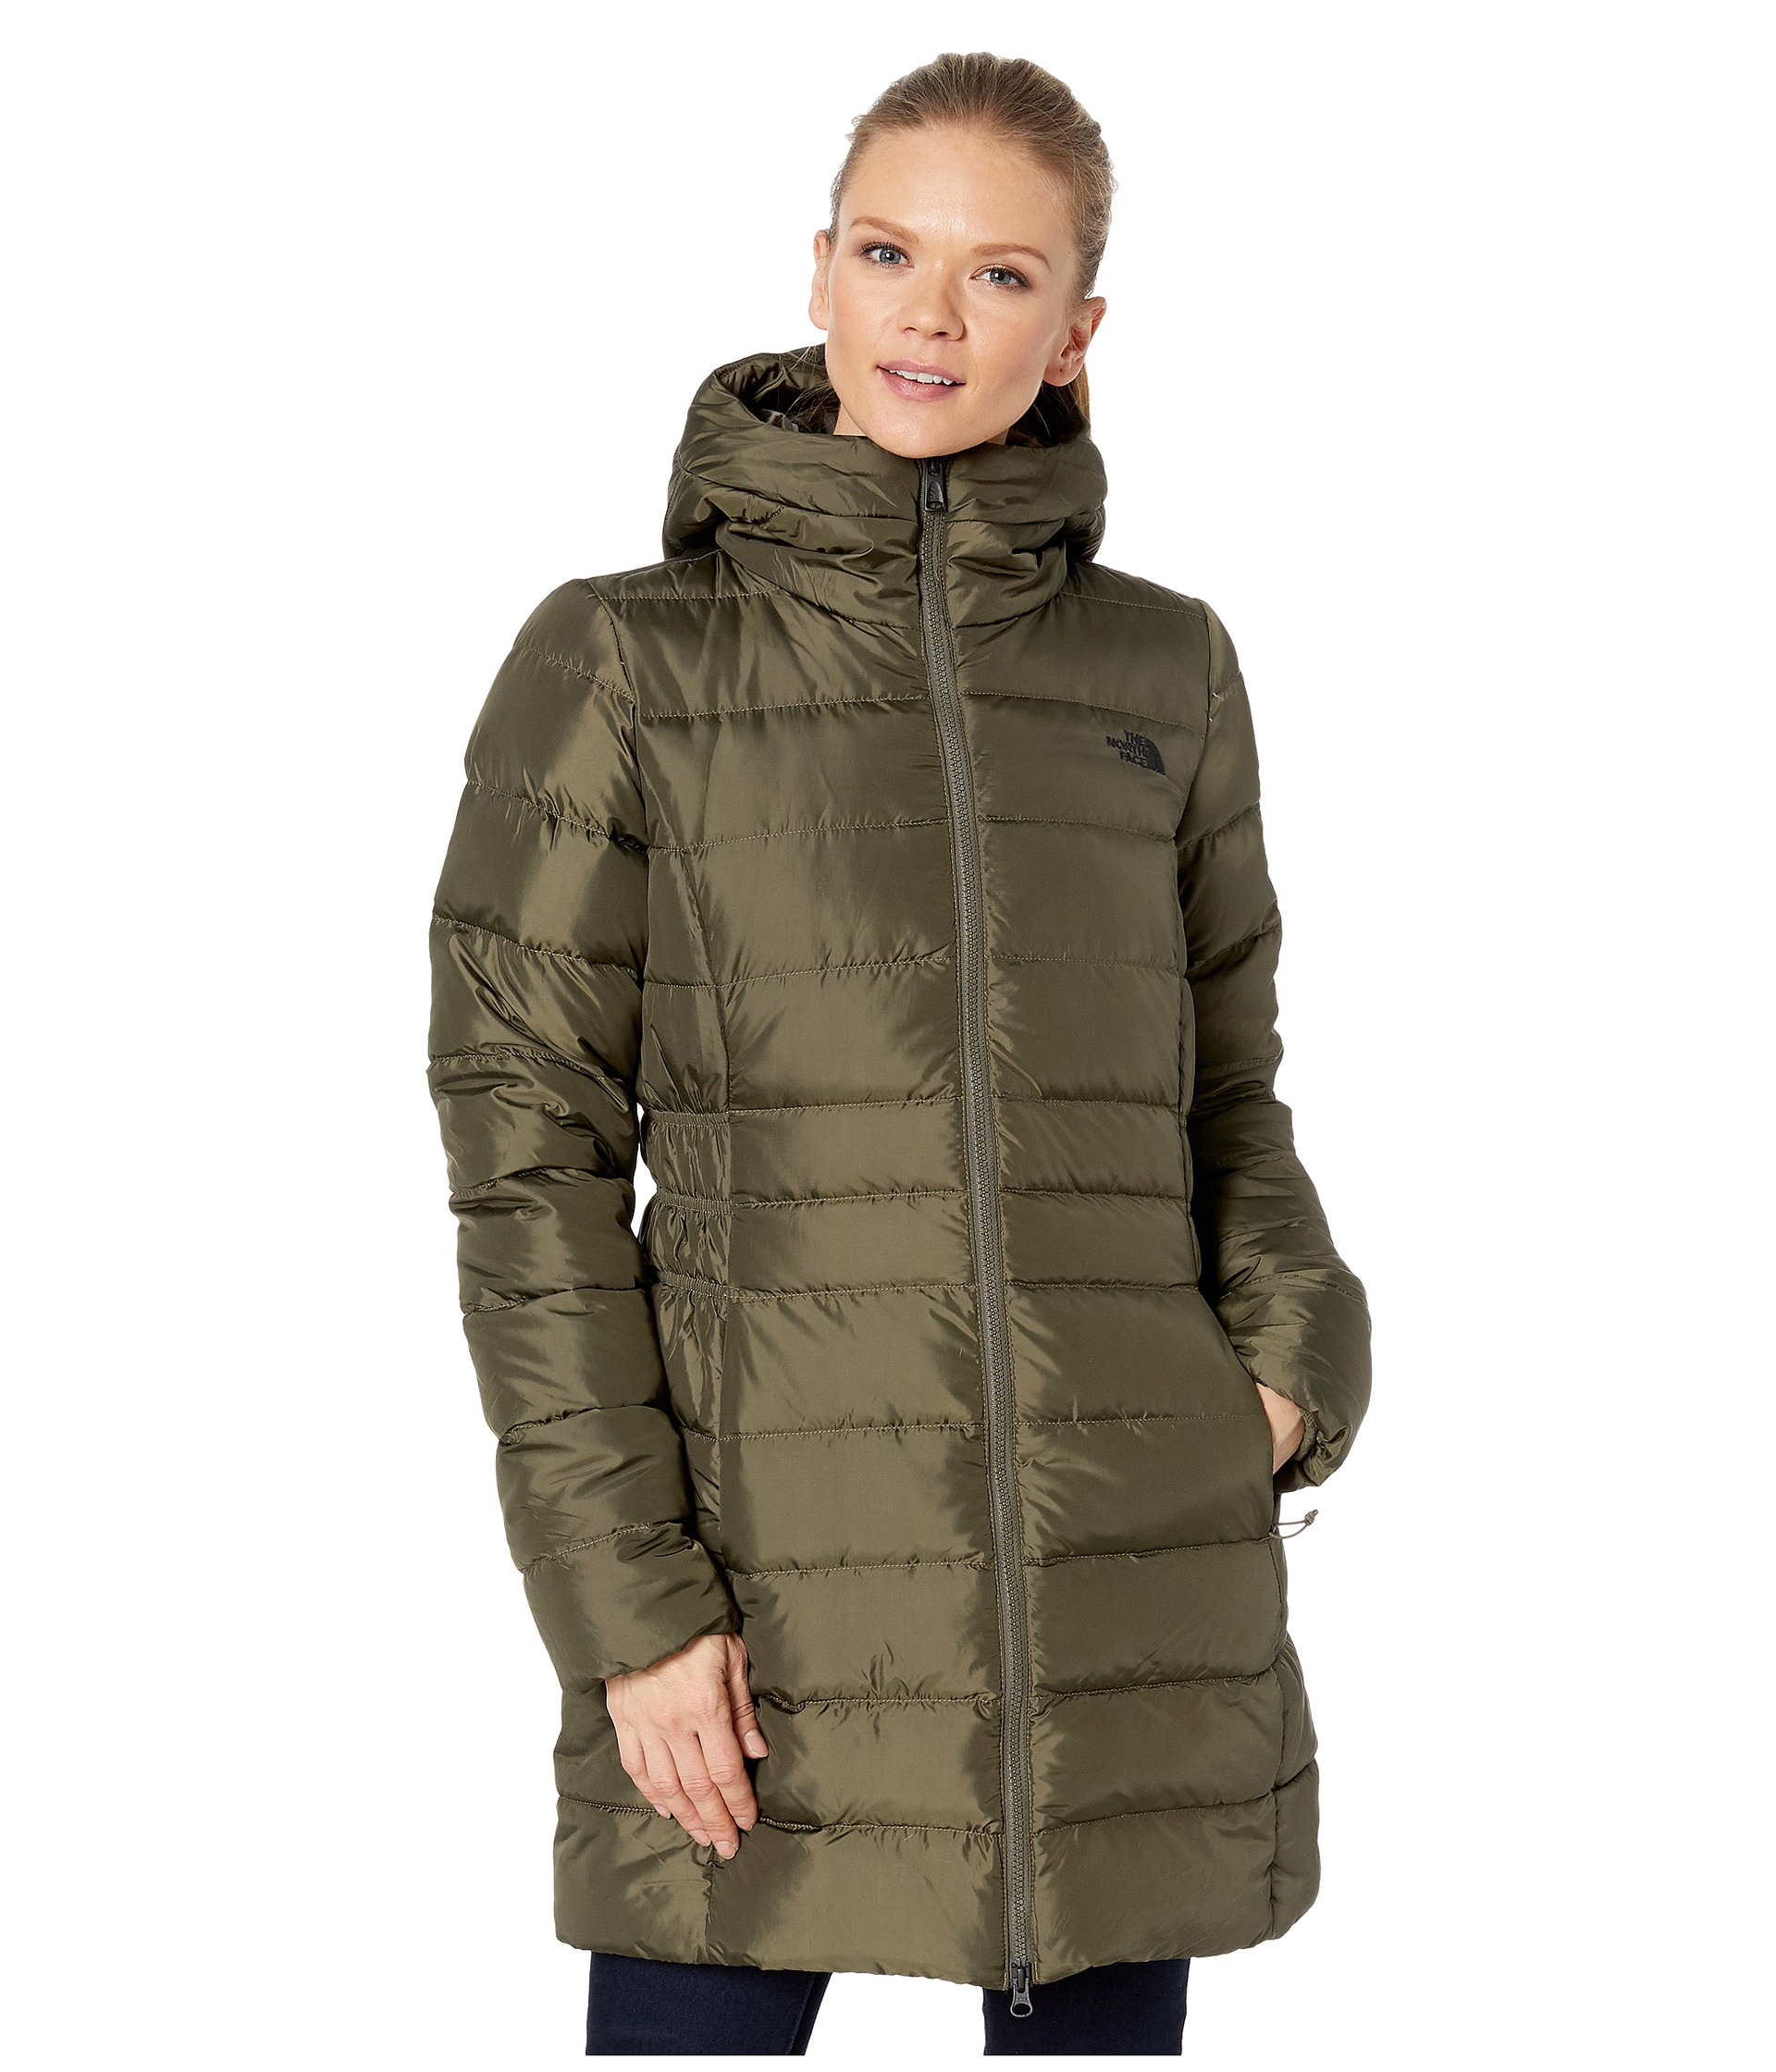 The North Face Gotham Parka II at Zappos.com